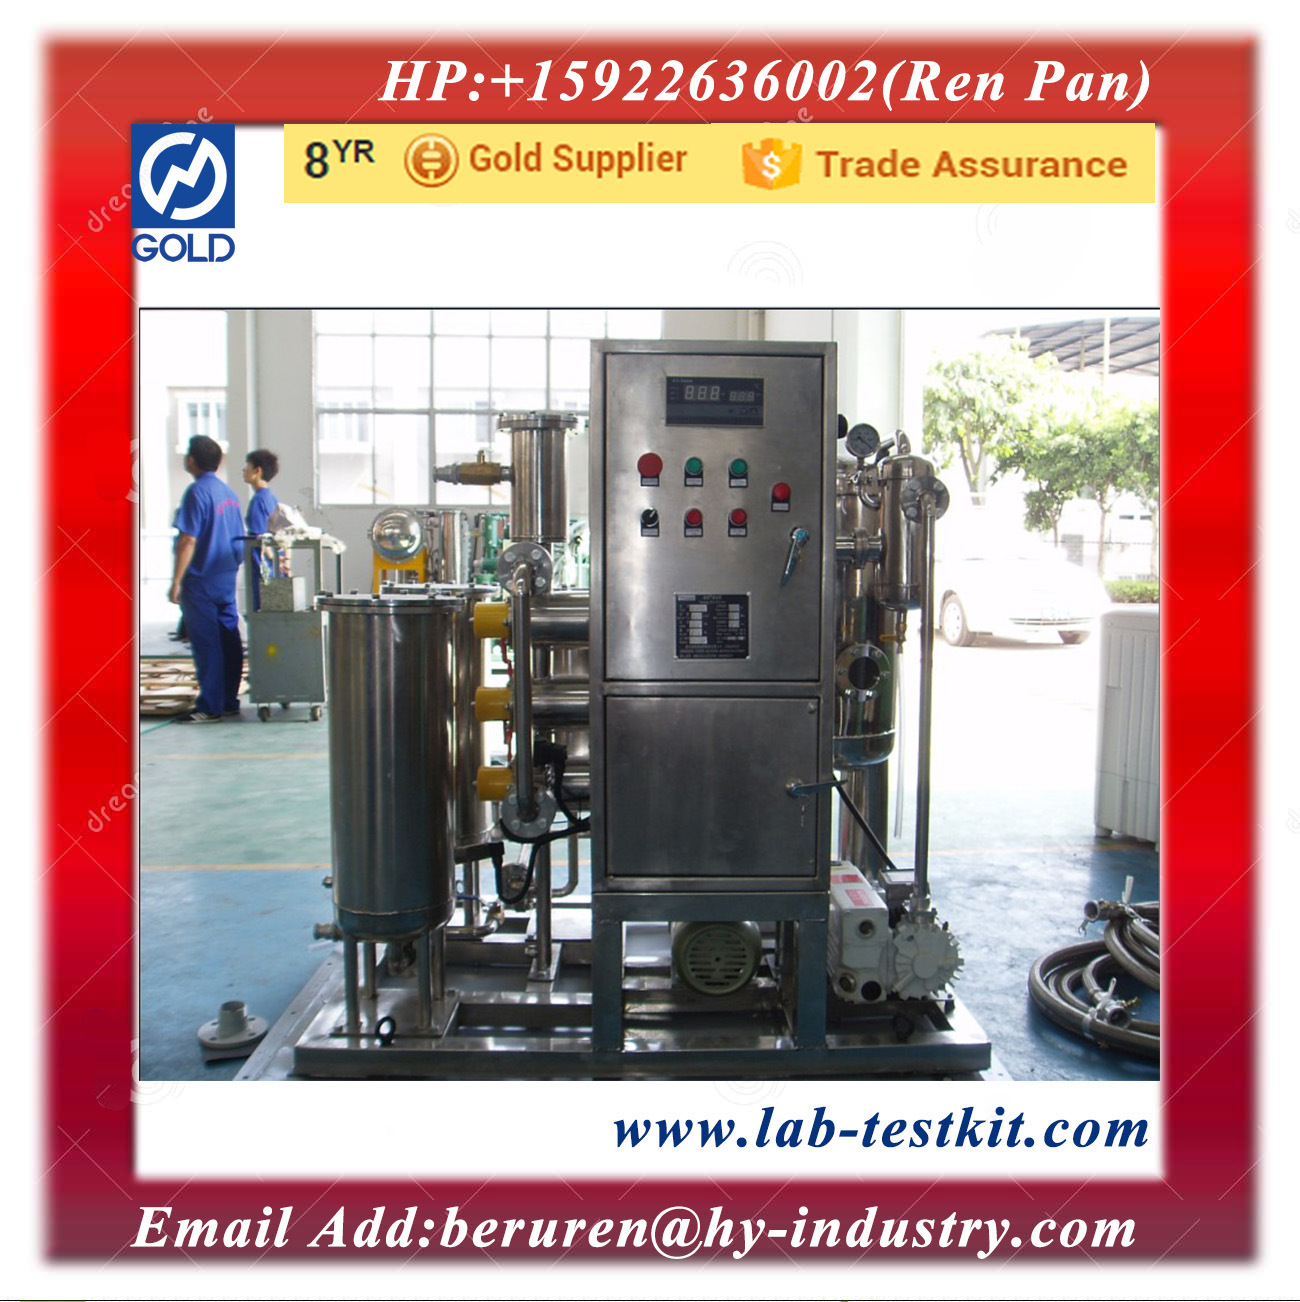 Stainless Steel Fire Resistant Oil Purifier with Capacity of 10 Liters Per Minute